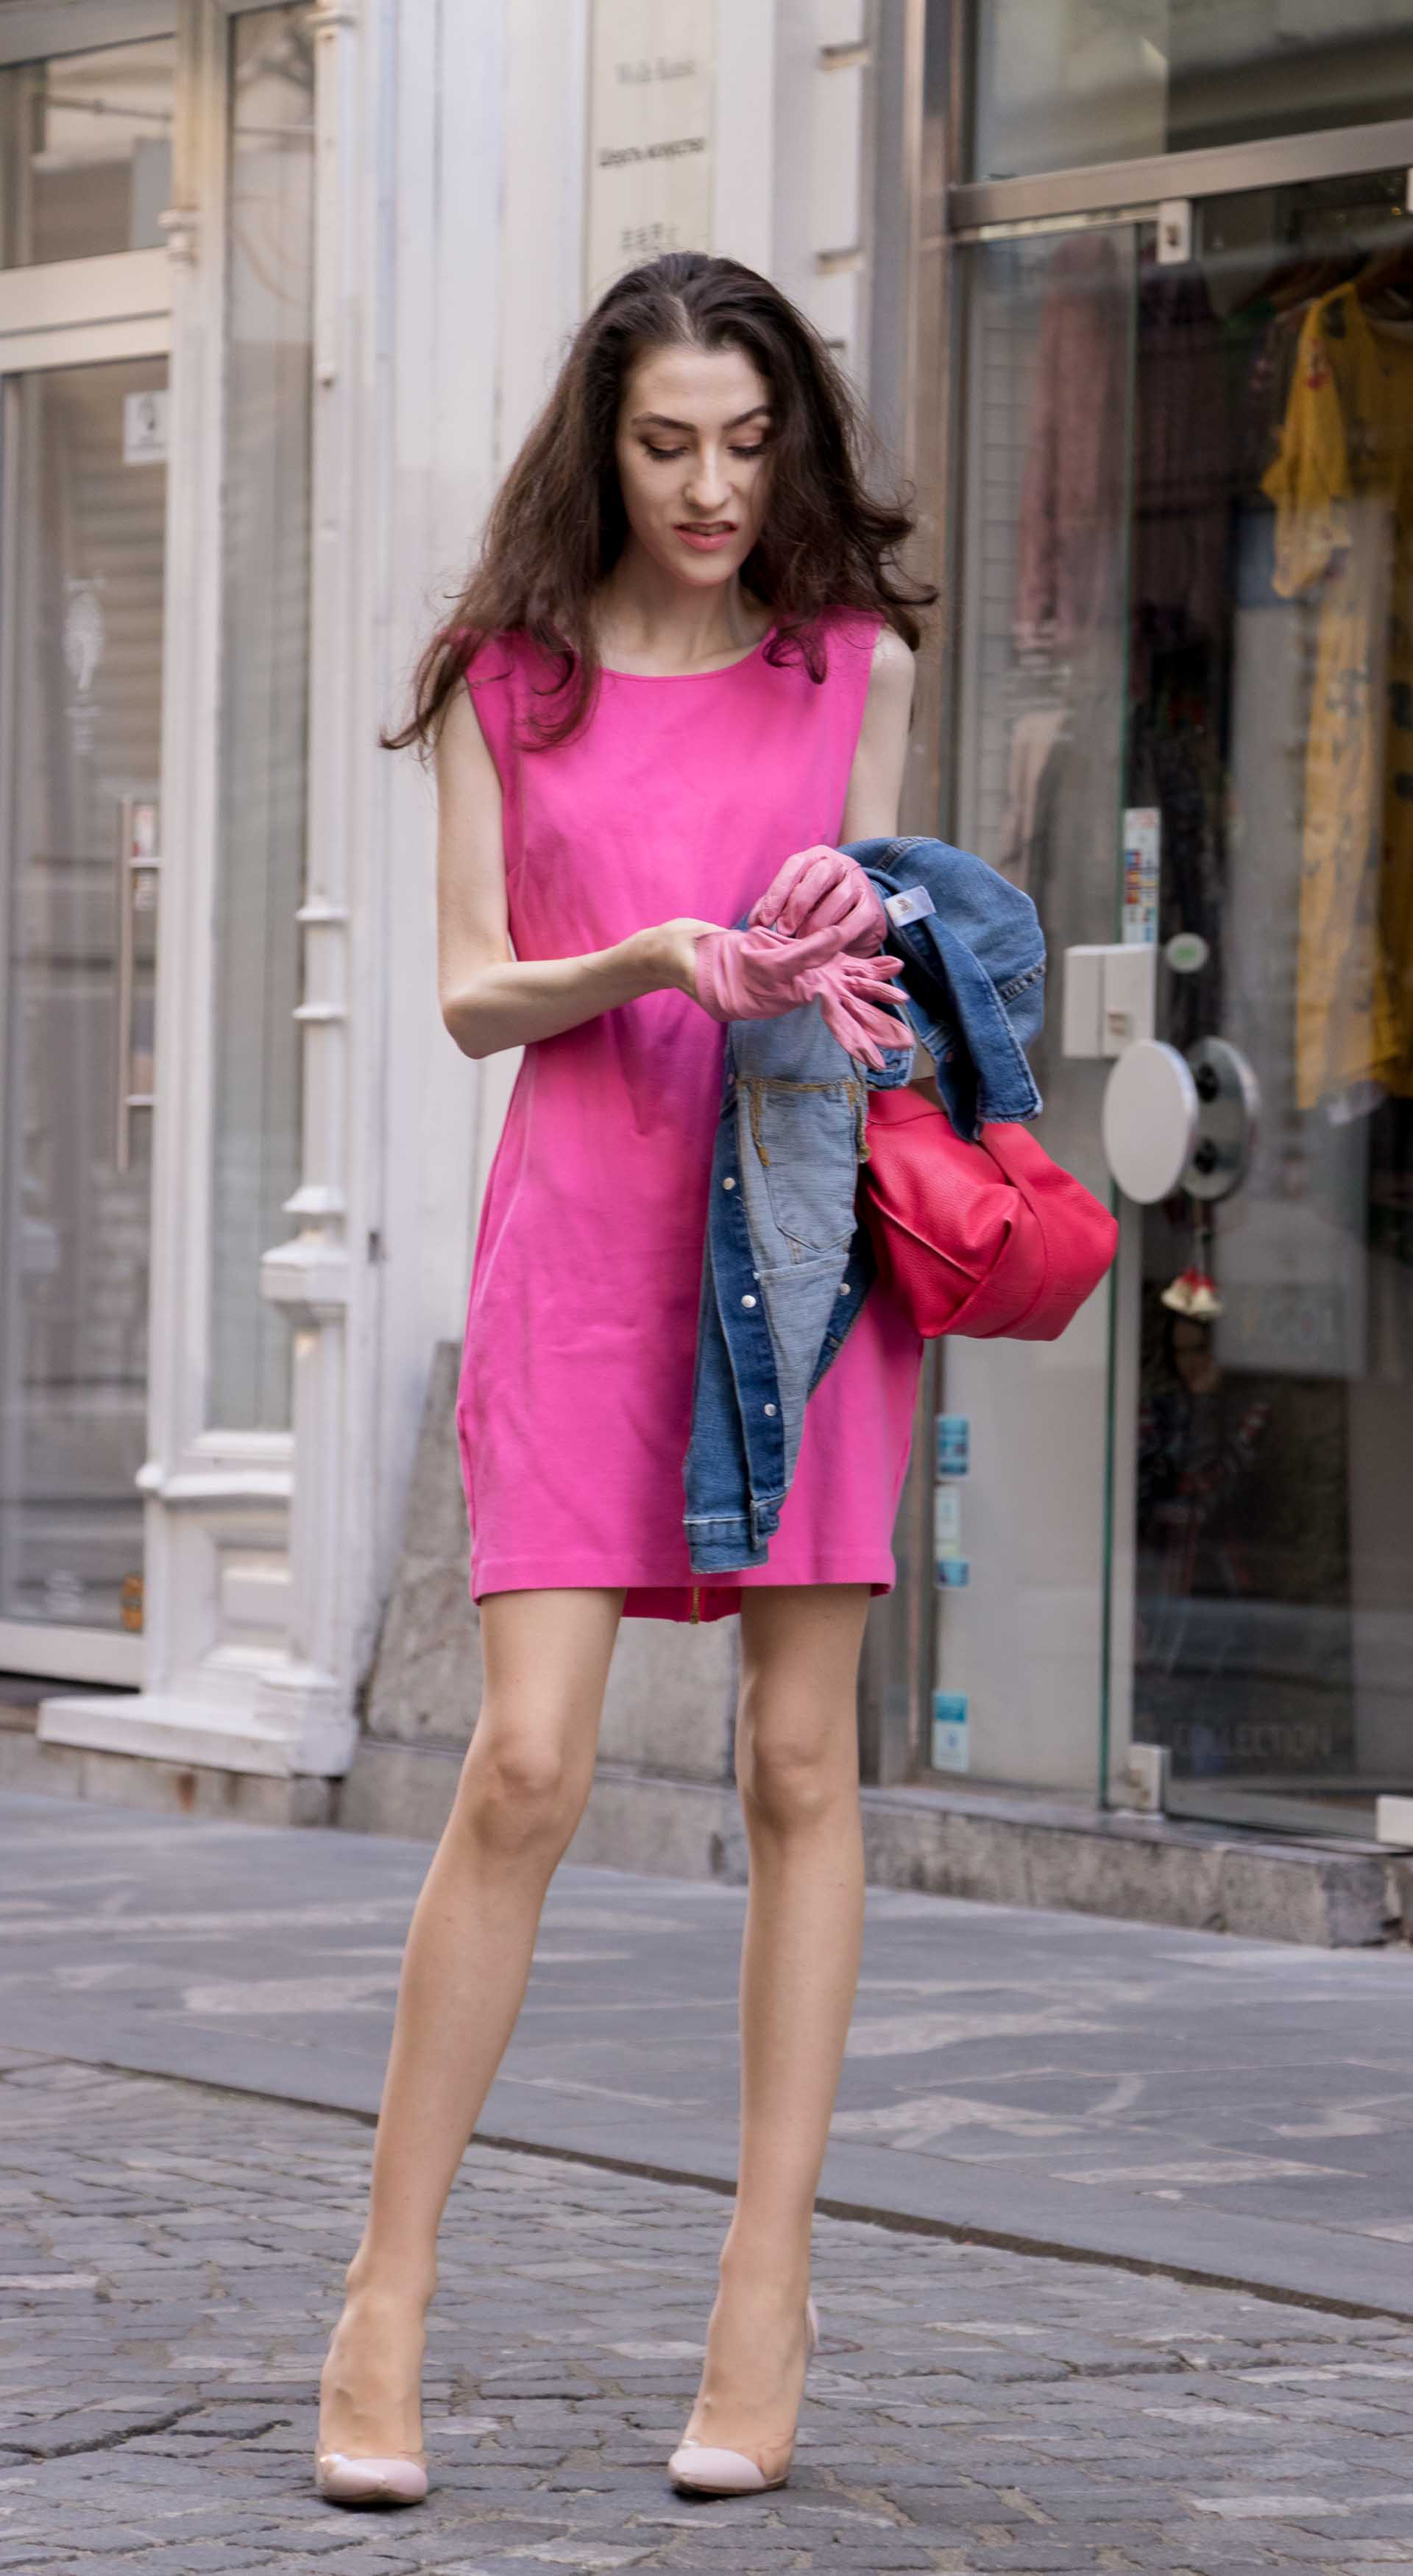 Veronika Lipar Fashion Blogger of Brunette from Wall Street wearing H&M denim jacket, pink bodycon dress, blush Gianvito Rossi plexi pumps, pink Forzieri gloves, See by Chloé pink top handle bag, Adam Selman x Le Specs white cat eye Lolita sunglasses while standing on the street in Ljubljana